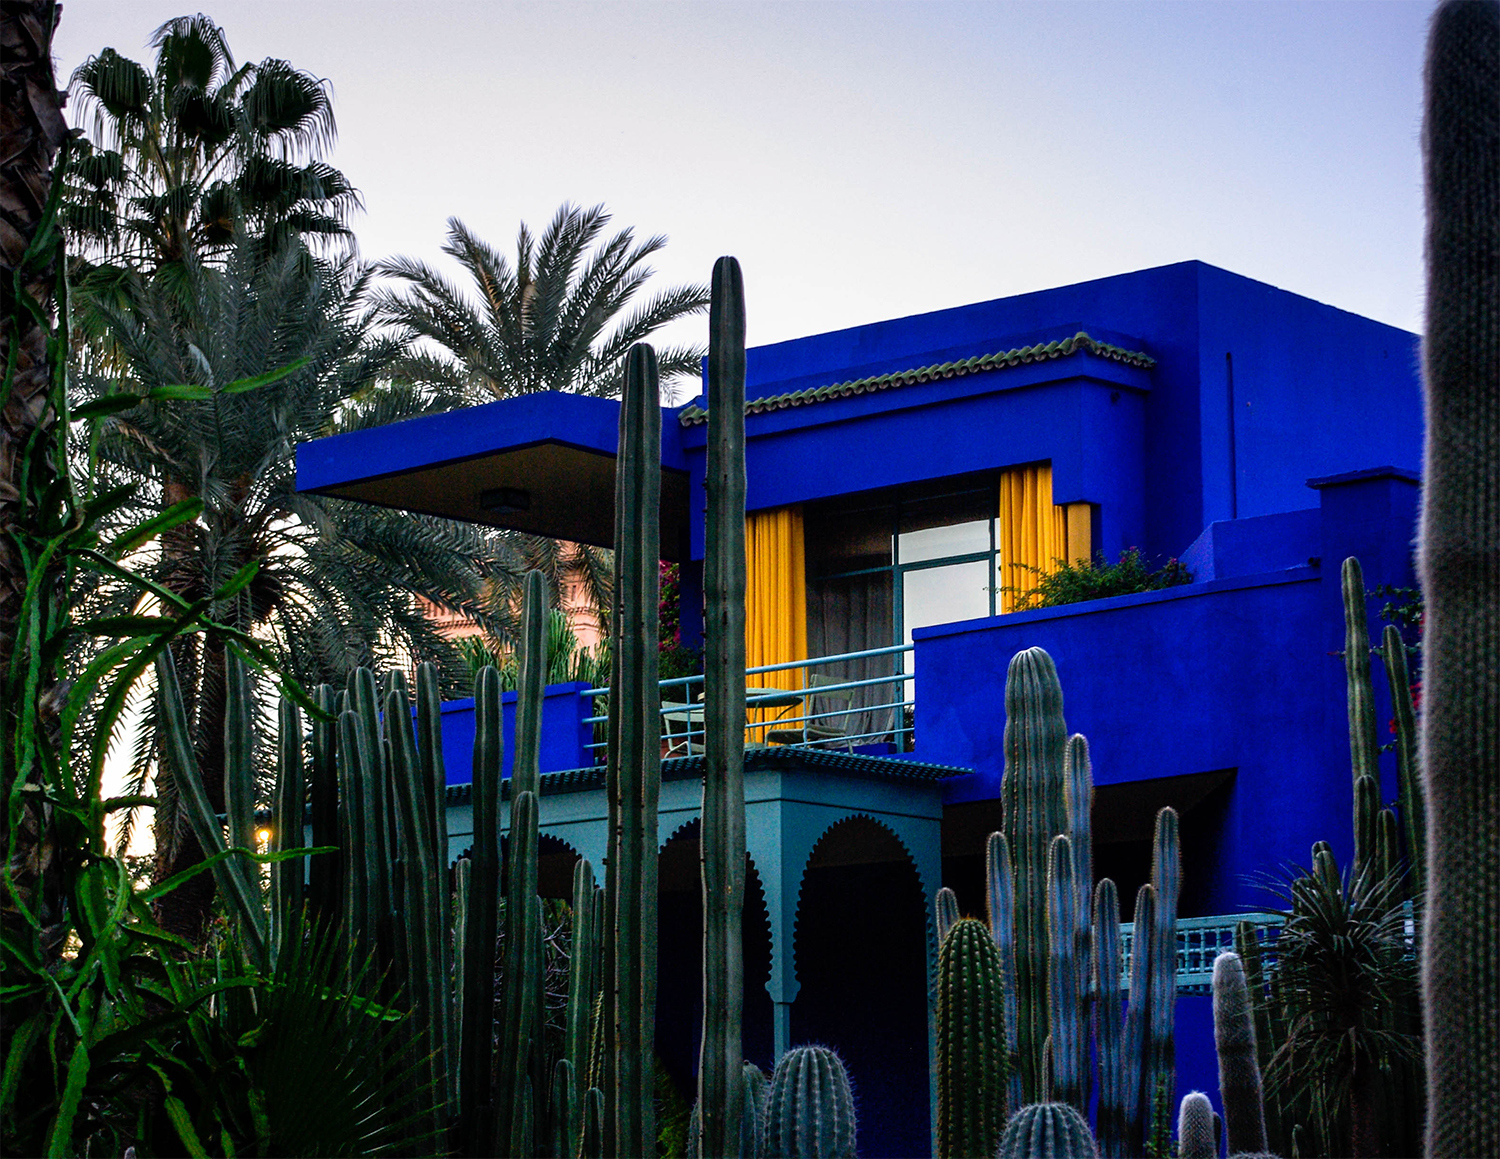 <p>Set in a beautiful walled botanic garden, this stunning house was conceived by the French artist Jacques Majorelle in the 1920s. Architecturally, it is a unique combination of local Moorish touches, art deco flourishes, and more than a little of the (then) new school of Modernism. The distinctive blue colour bears Majorelle's name. </p>